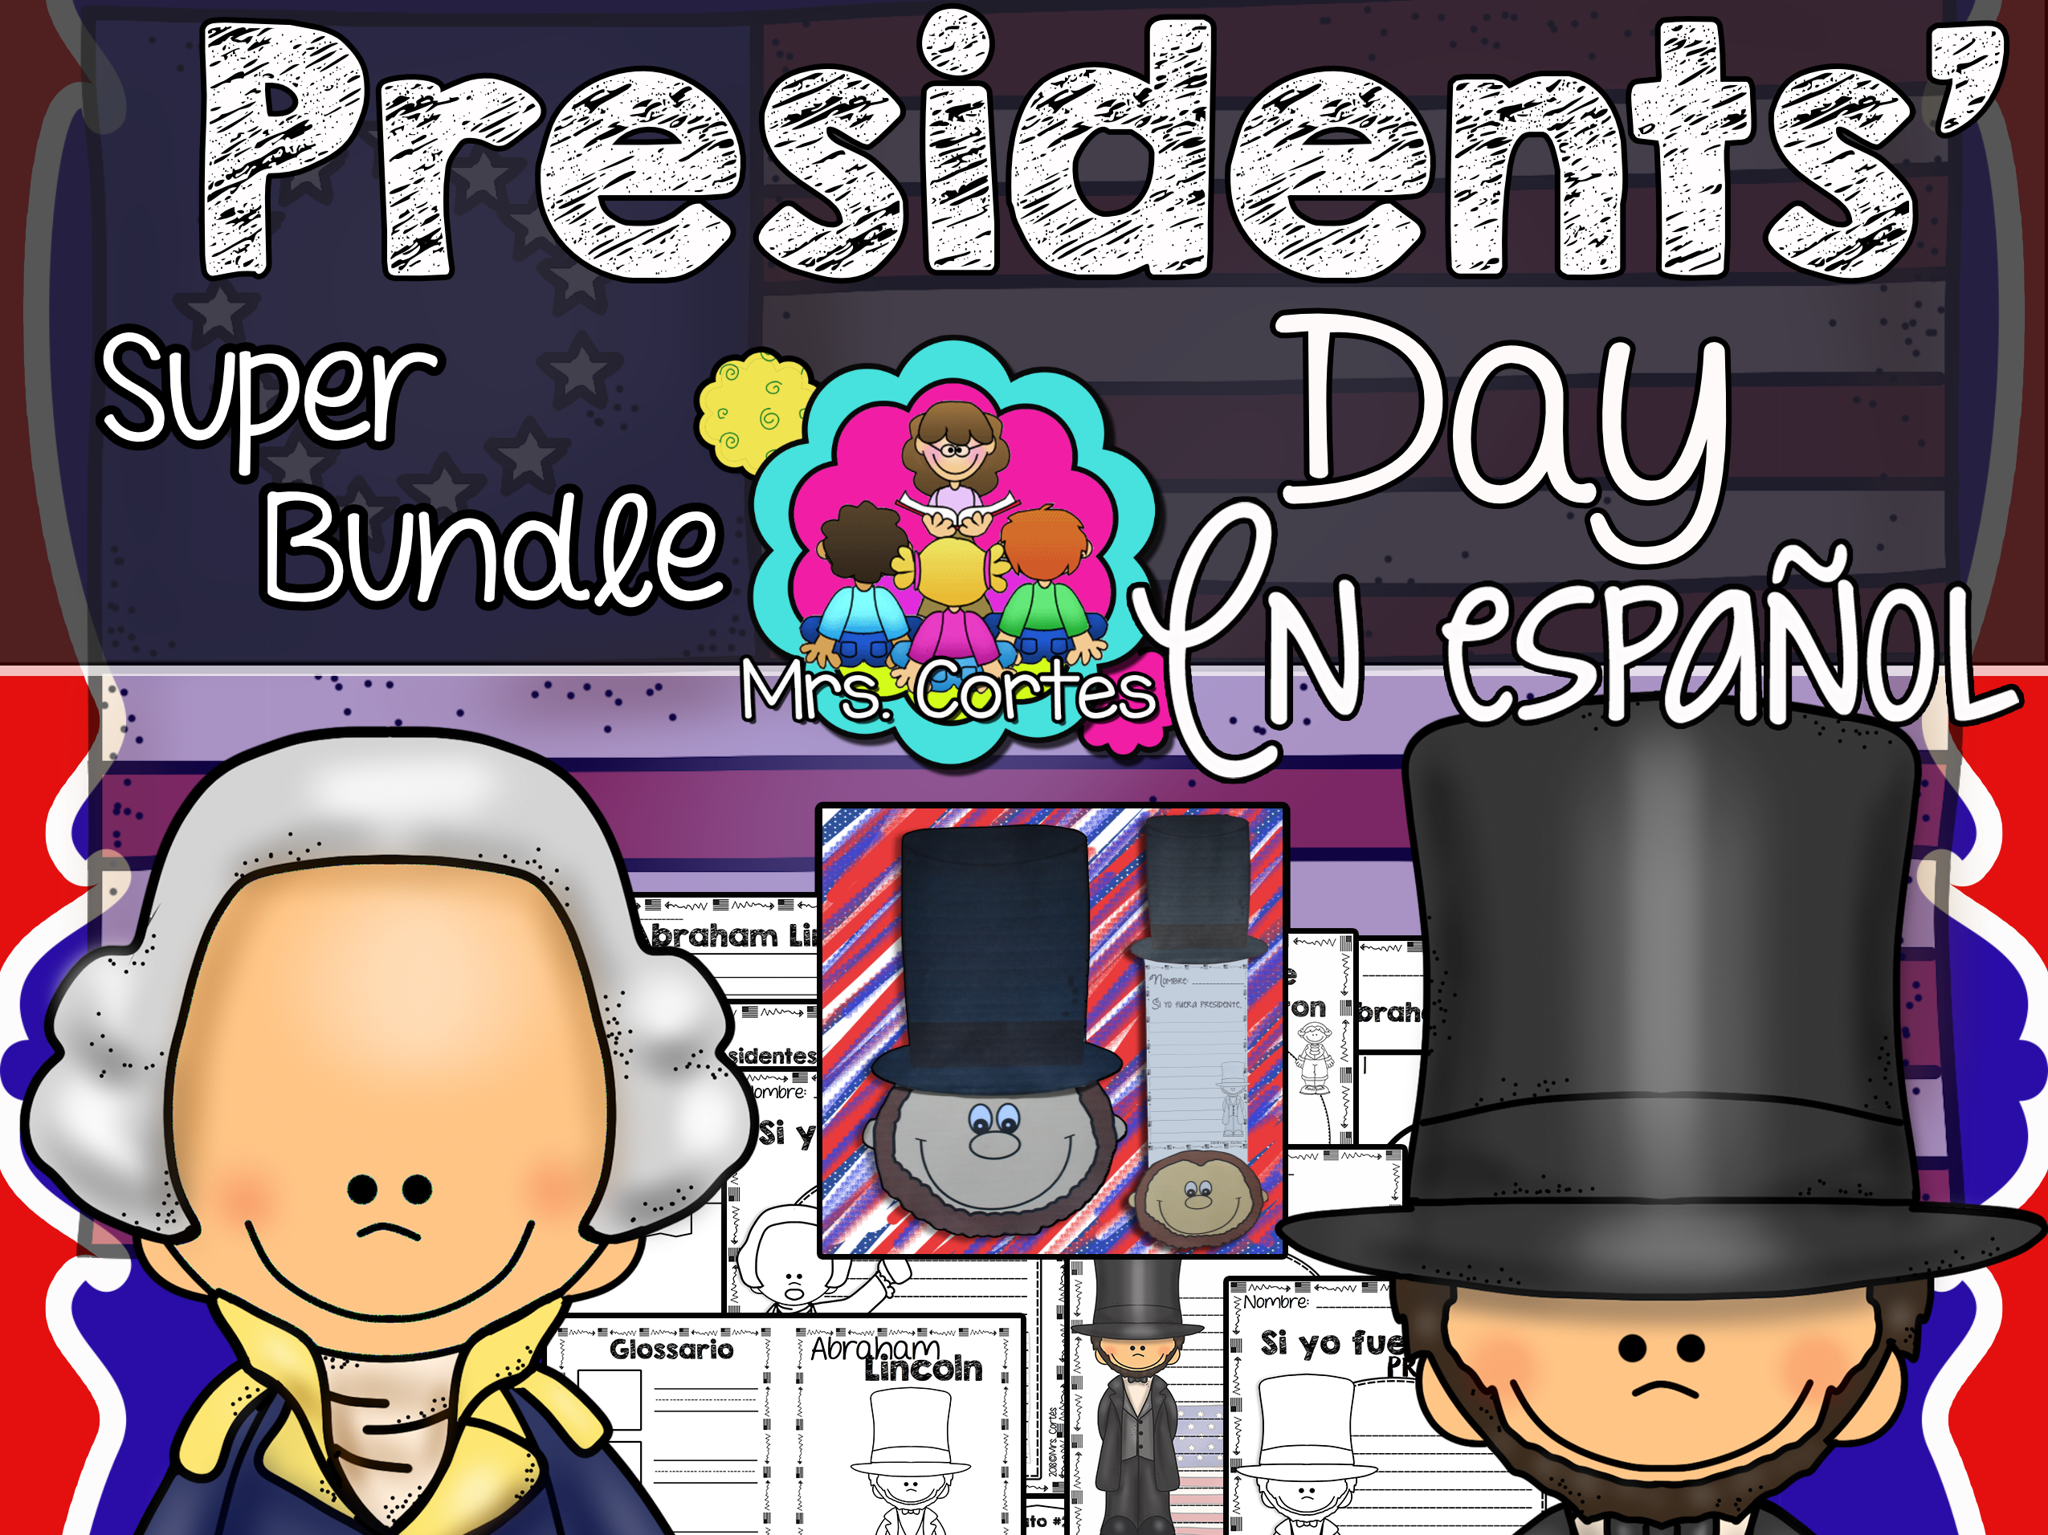 Día de los presidentes Super Bundle